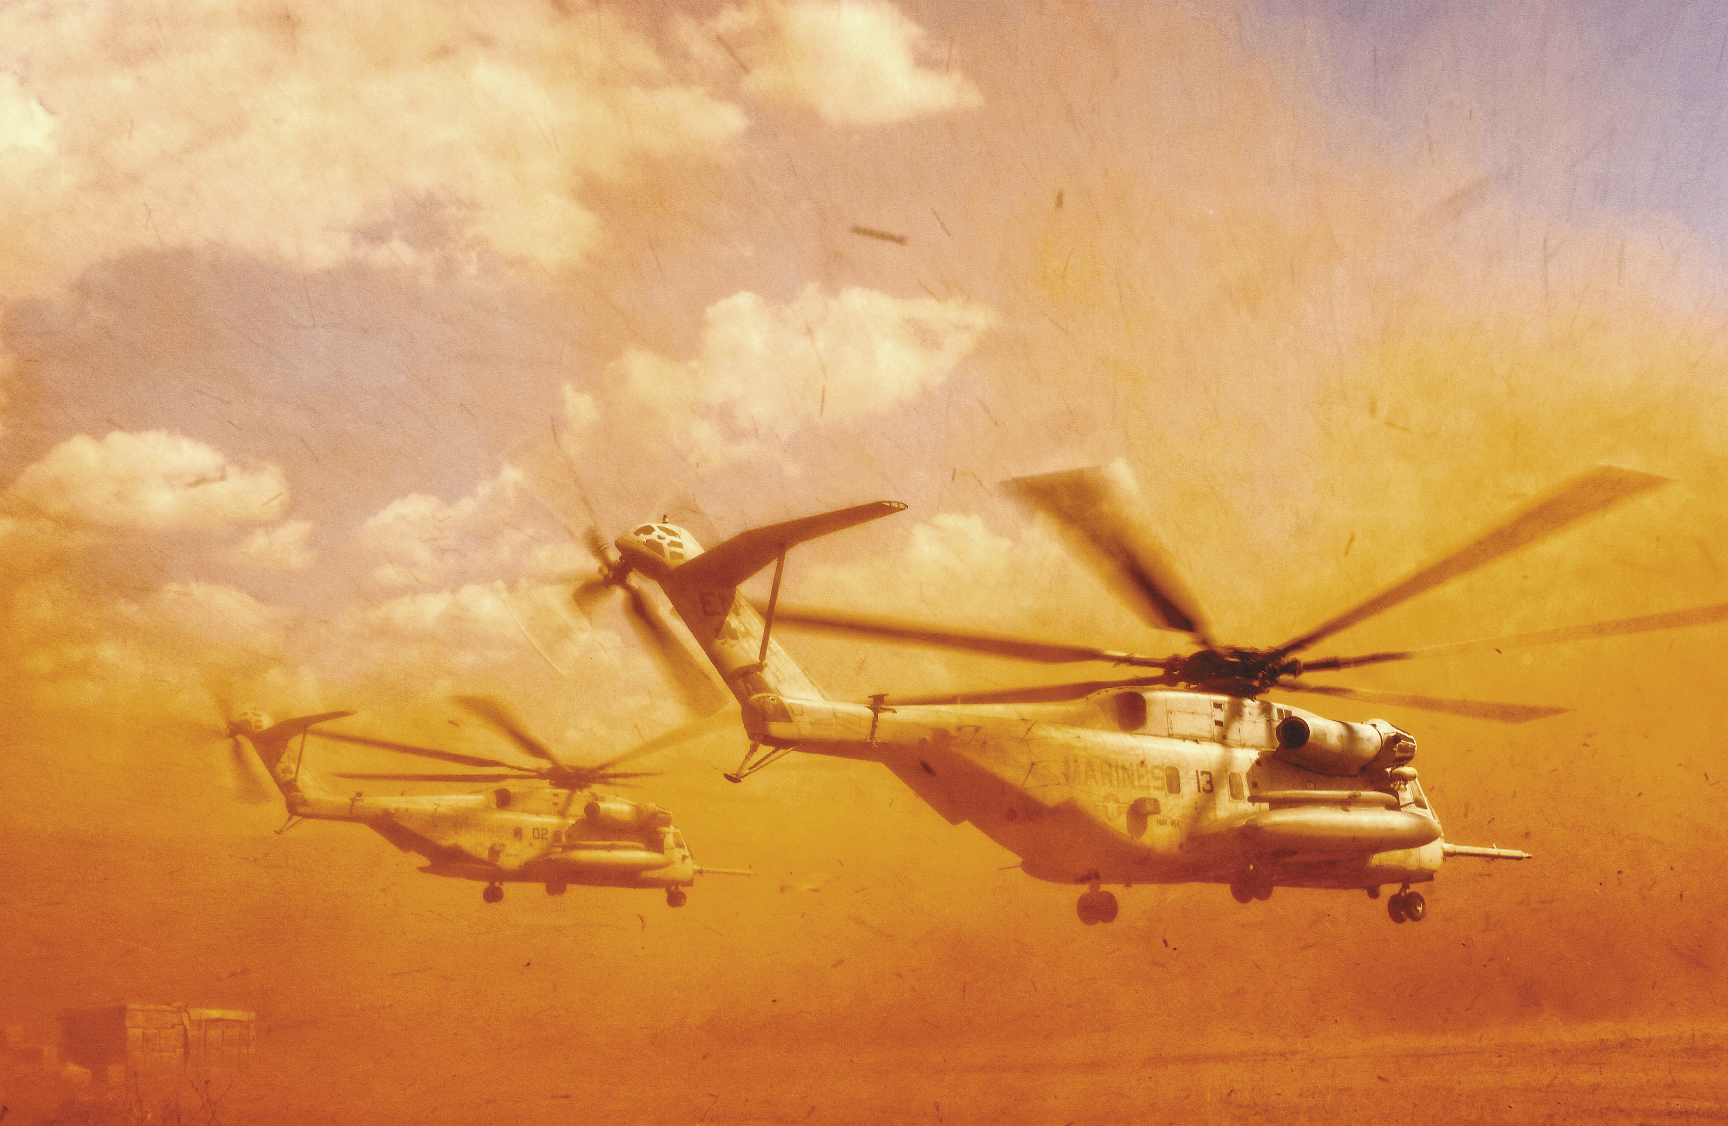 November 20, 2005:  A Marine CH-53E helicopter from the 464th Alpha Company kicks up sand and rocks as it takes off in Harar, Ethiopia. There, sailors from the Navy Mobile Construction Battalion 3 have dug three wells and are staging to drill several hand-pump wells, which will be used to provide thousands of Ethiopians and their livestock with potable water.